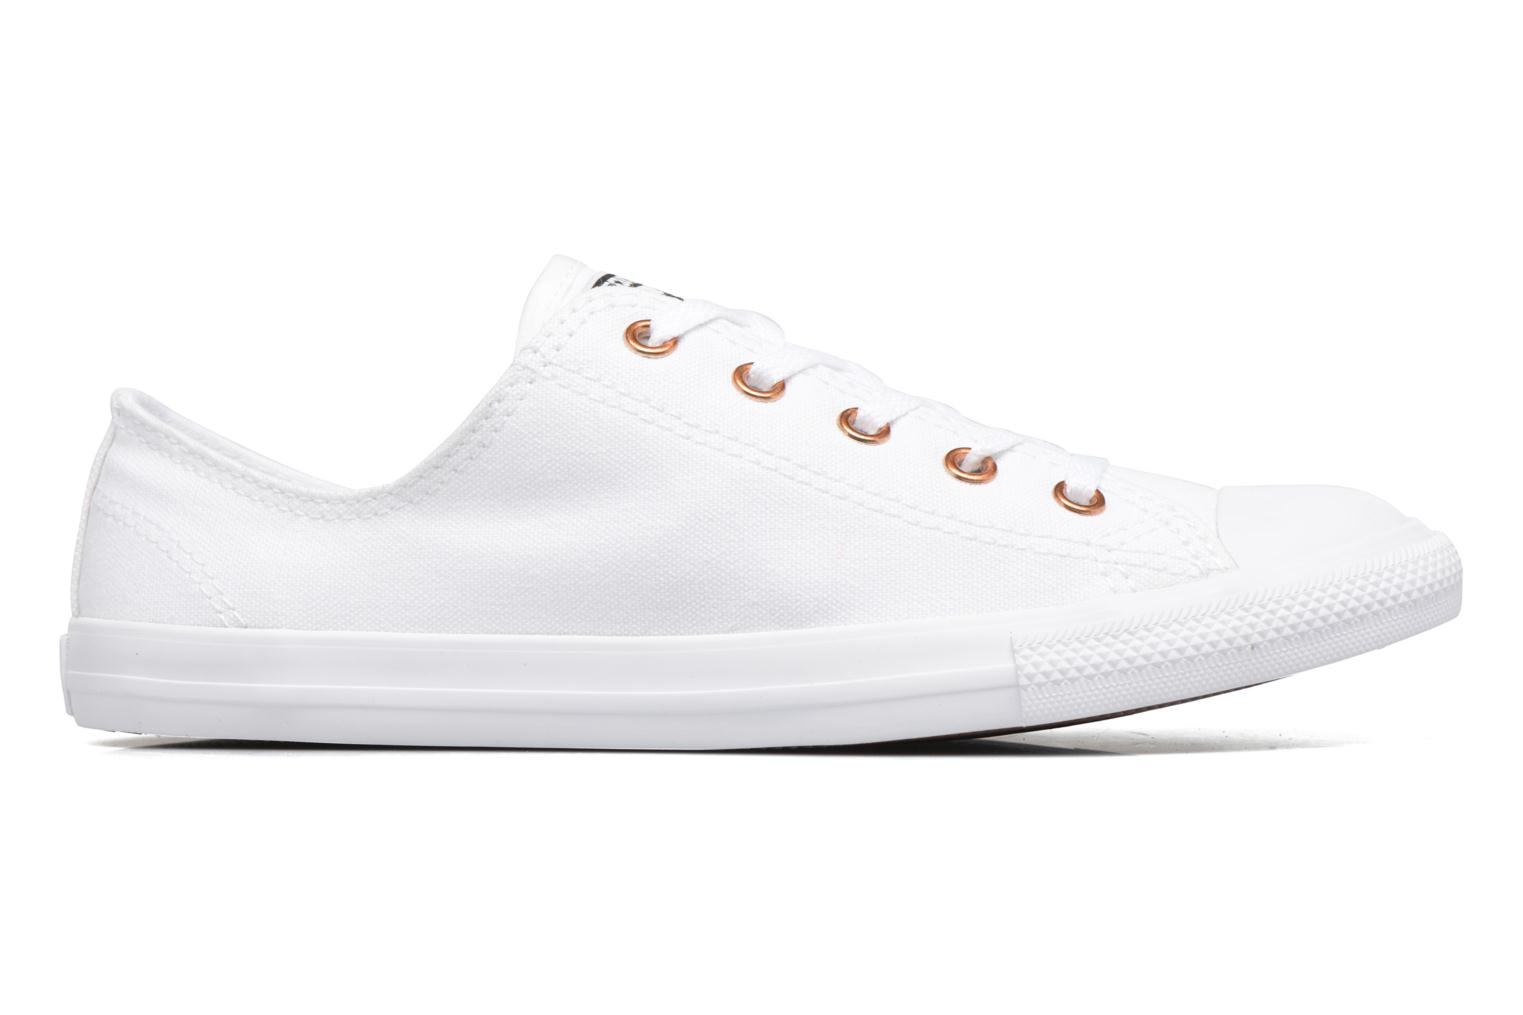 Chuck Taylor All Star Dainty Canvas + Rose Gold Eyelets Ox White/White/Gold